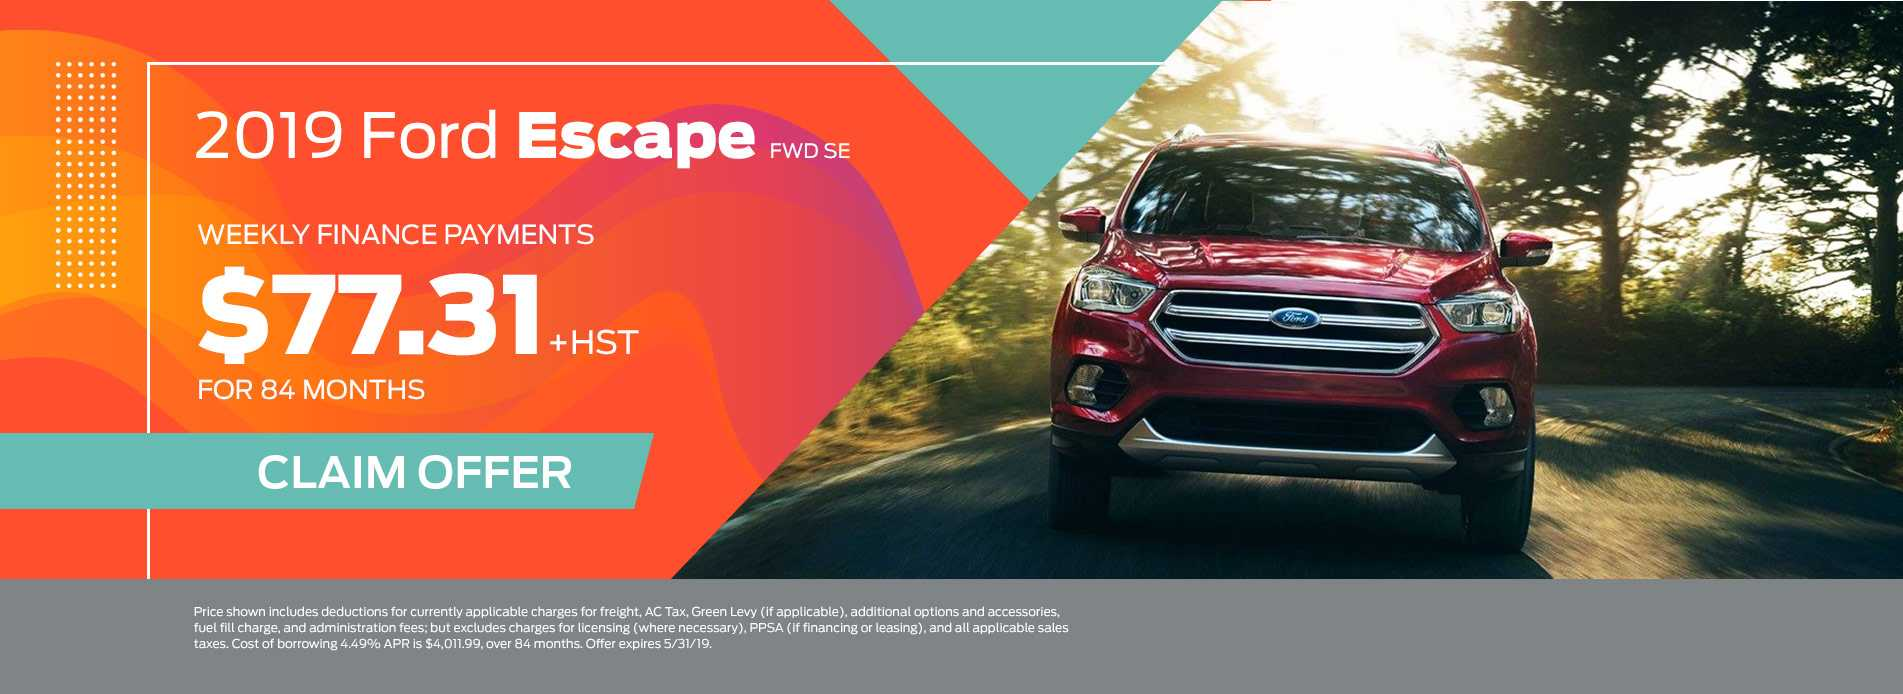 Ford Escape Barrie Ford May Finance